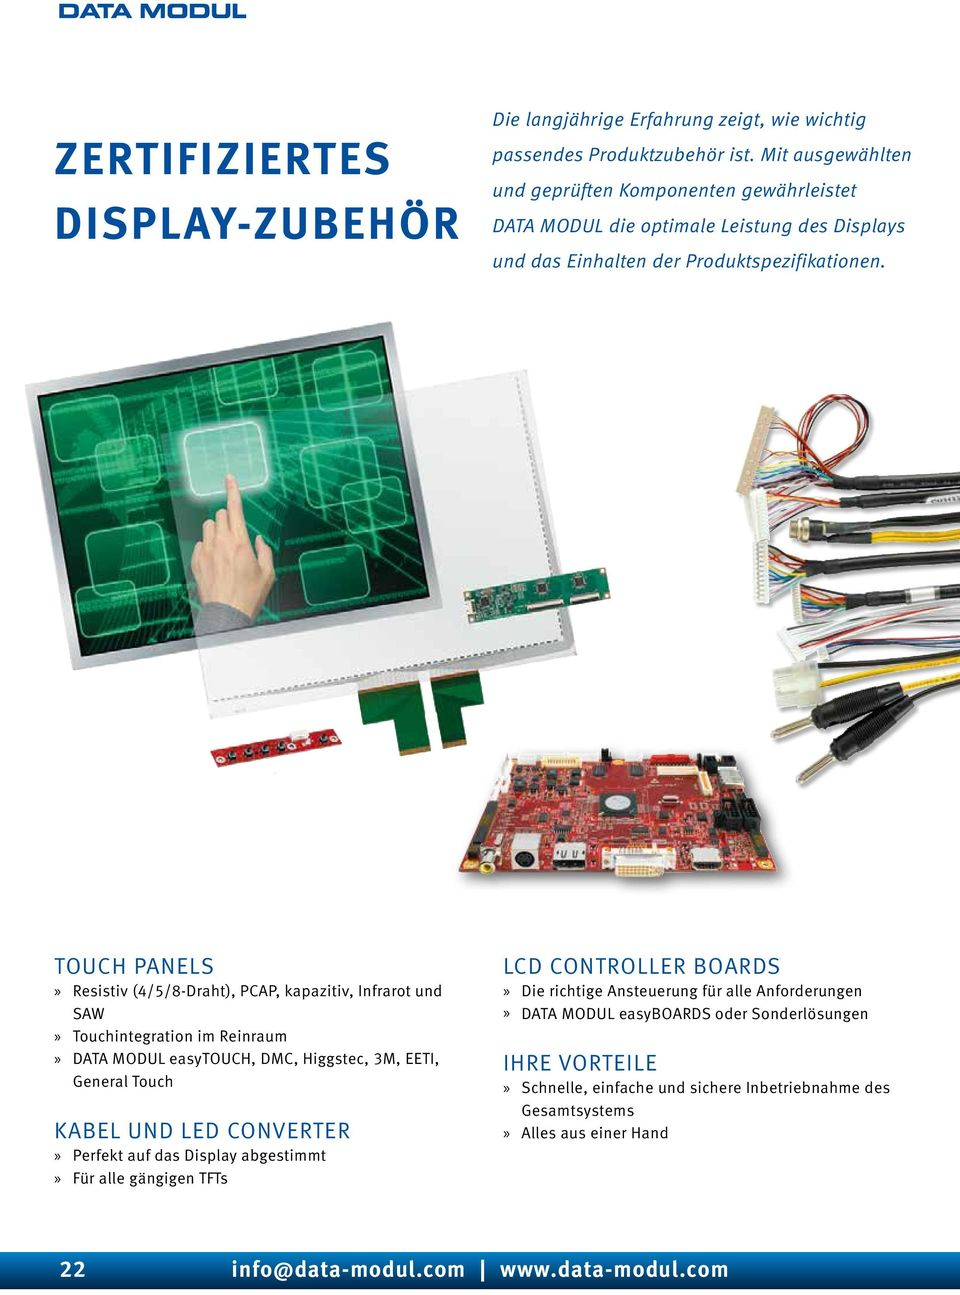 TOUCH PANELS Resistiv (4/5/8-Draht), PCAP, kapazitiv, Infrarot und SAW Touchintegration im Reinraum DATA MODUL easytouch, DMC, Higgstec, 3M, EETI, General Touch KABEL UND LED CONVERTER Perfekt